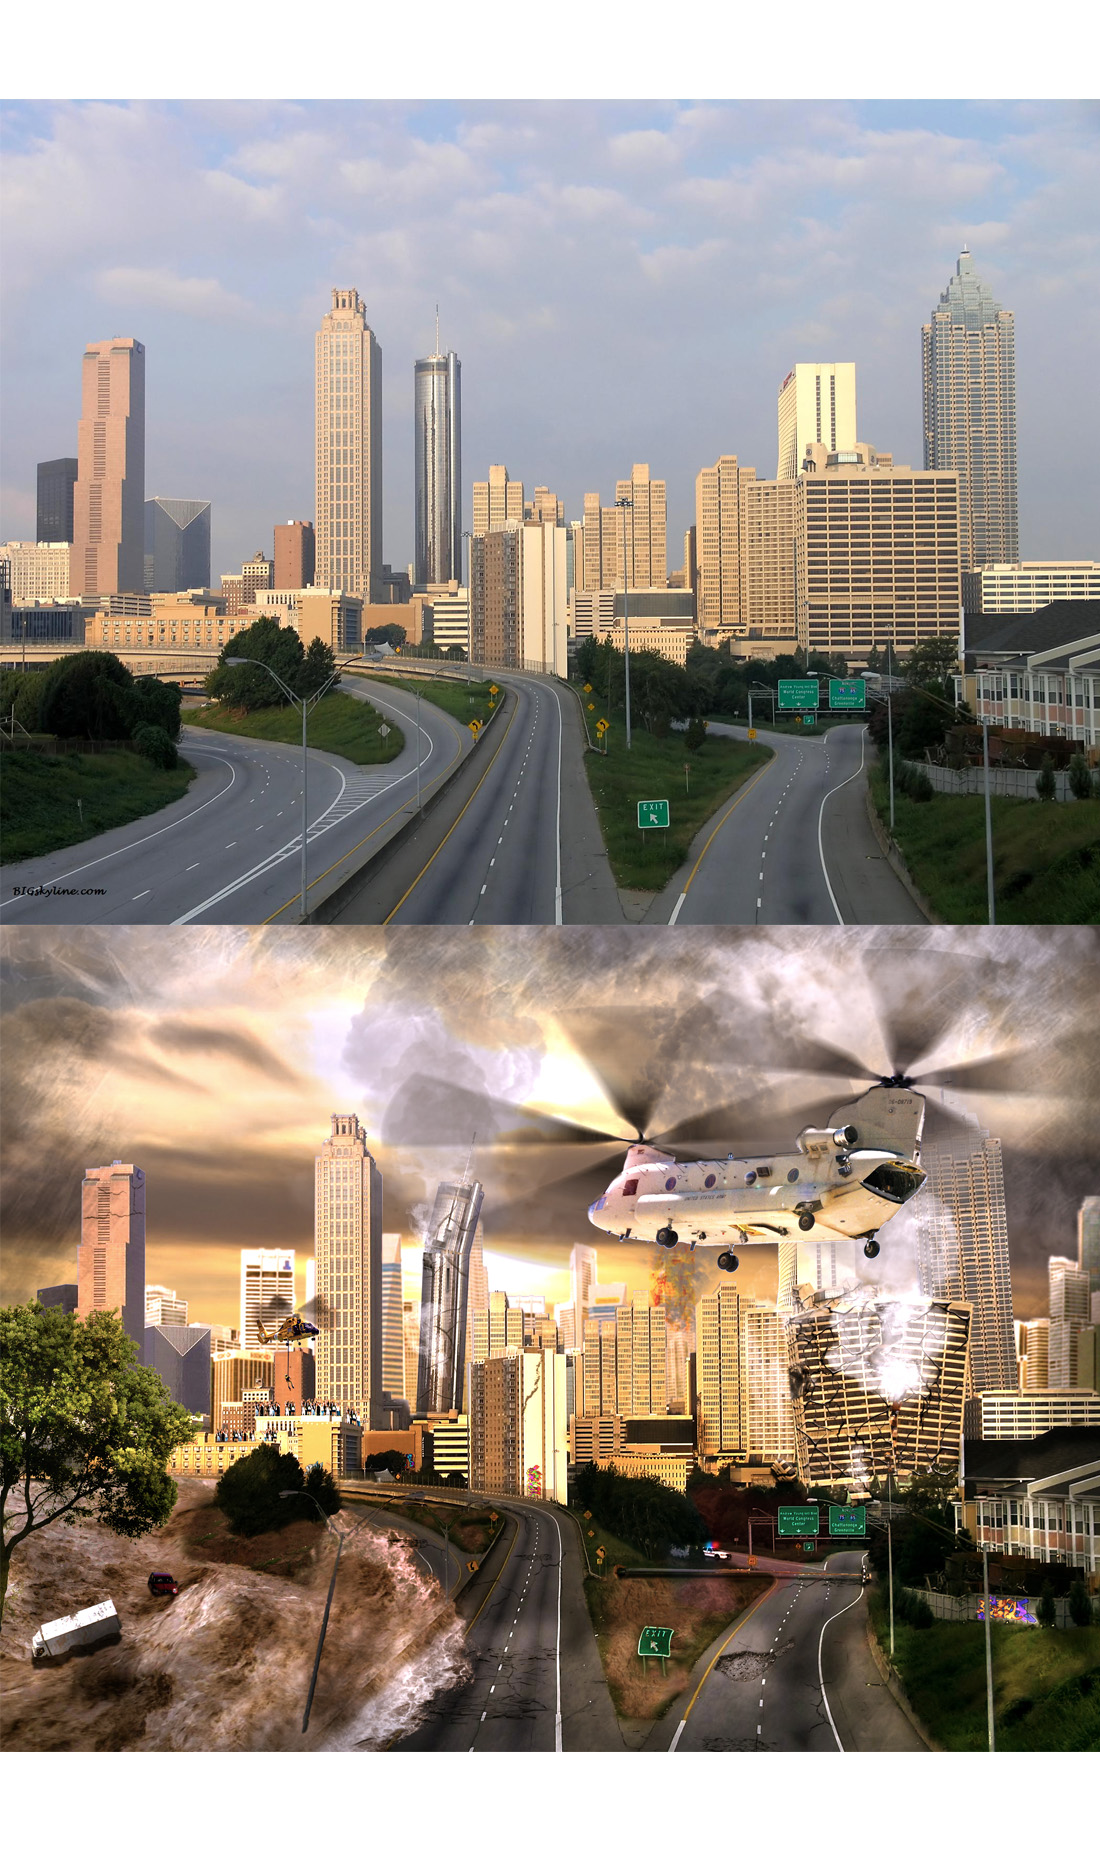 Before and after.  This was a matte painting that sourced from many different photos to create a dystopian cityscape in the midst of disaster.